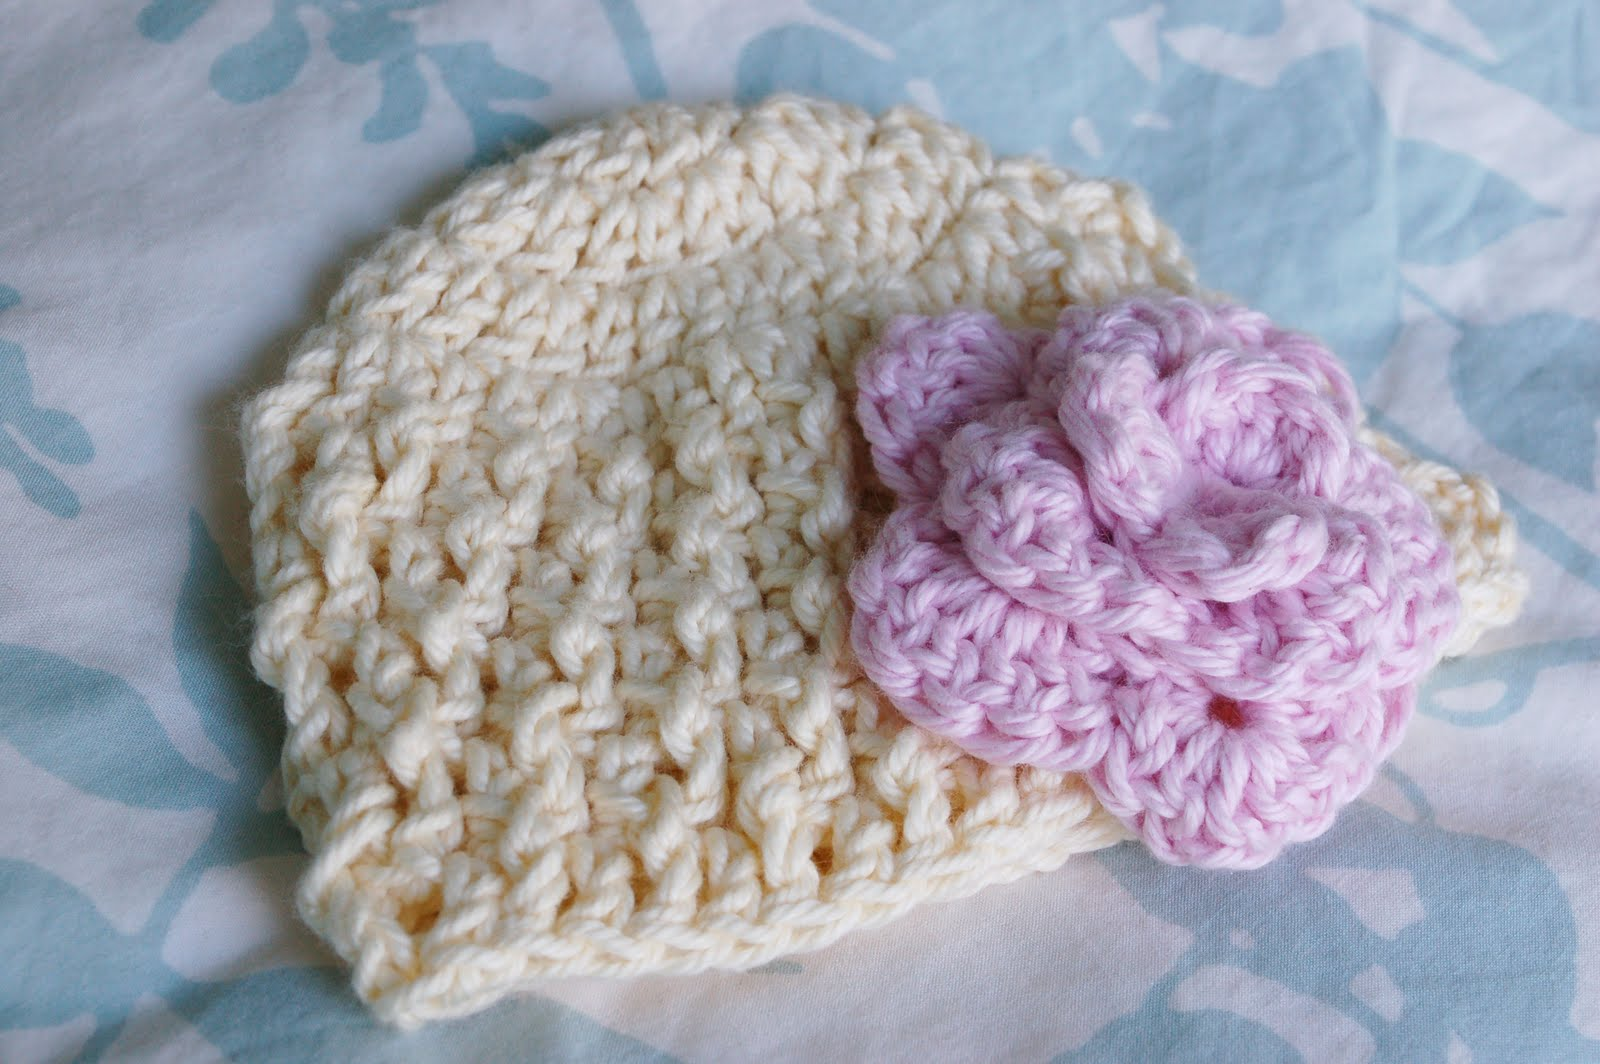 Alli crafts free pattern deeply textured hat newborn free pattern deeply textured hat newborn bankloansurffo Image collections